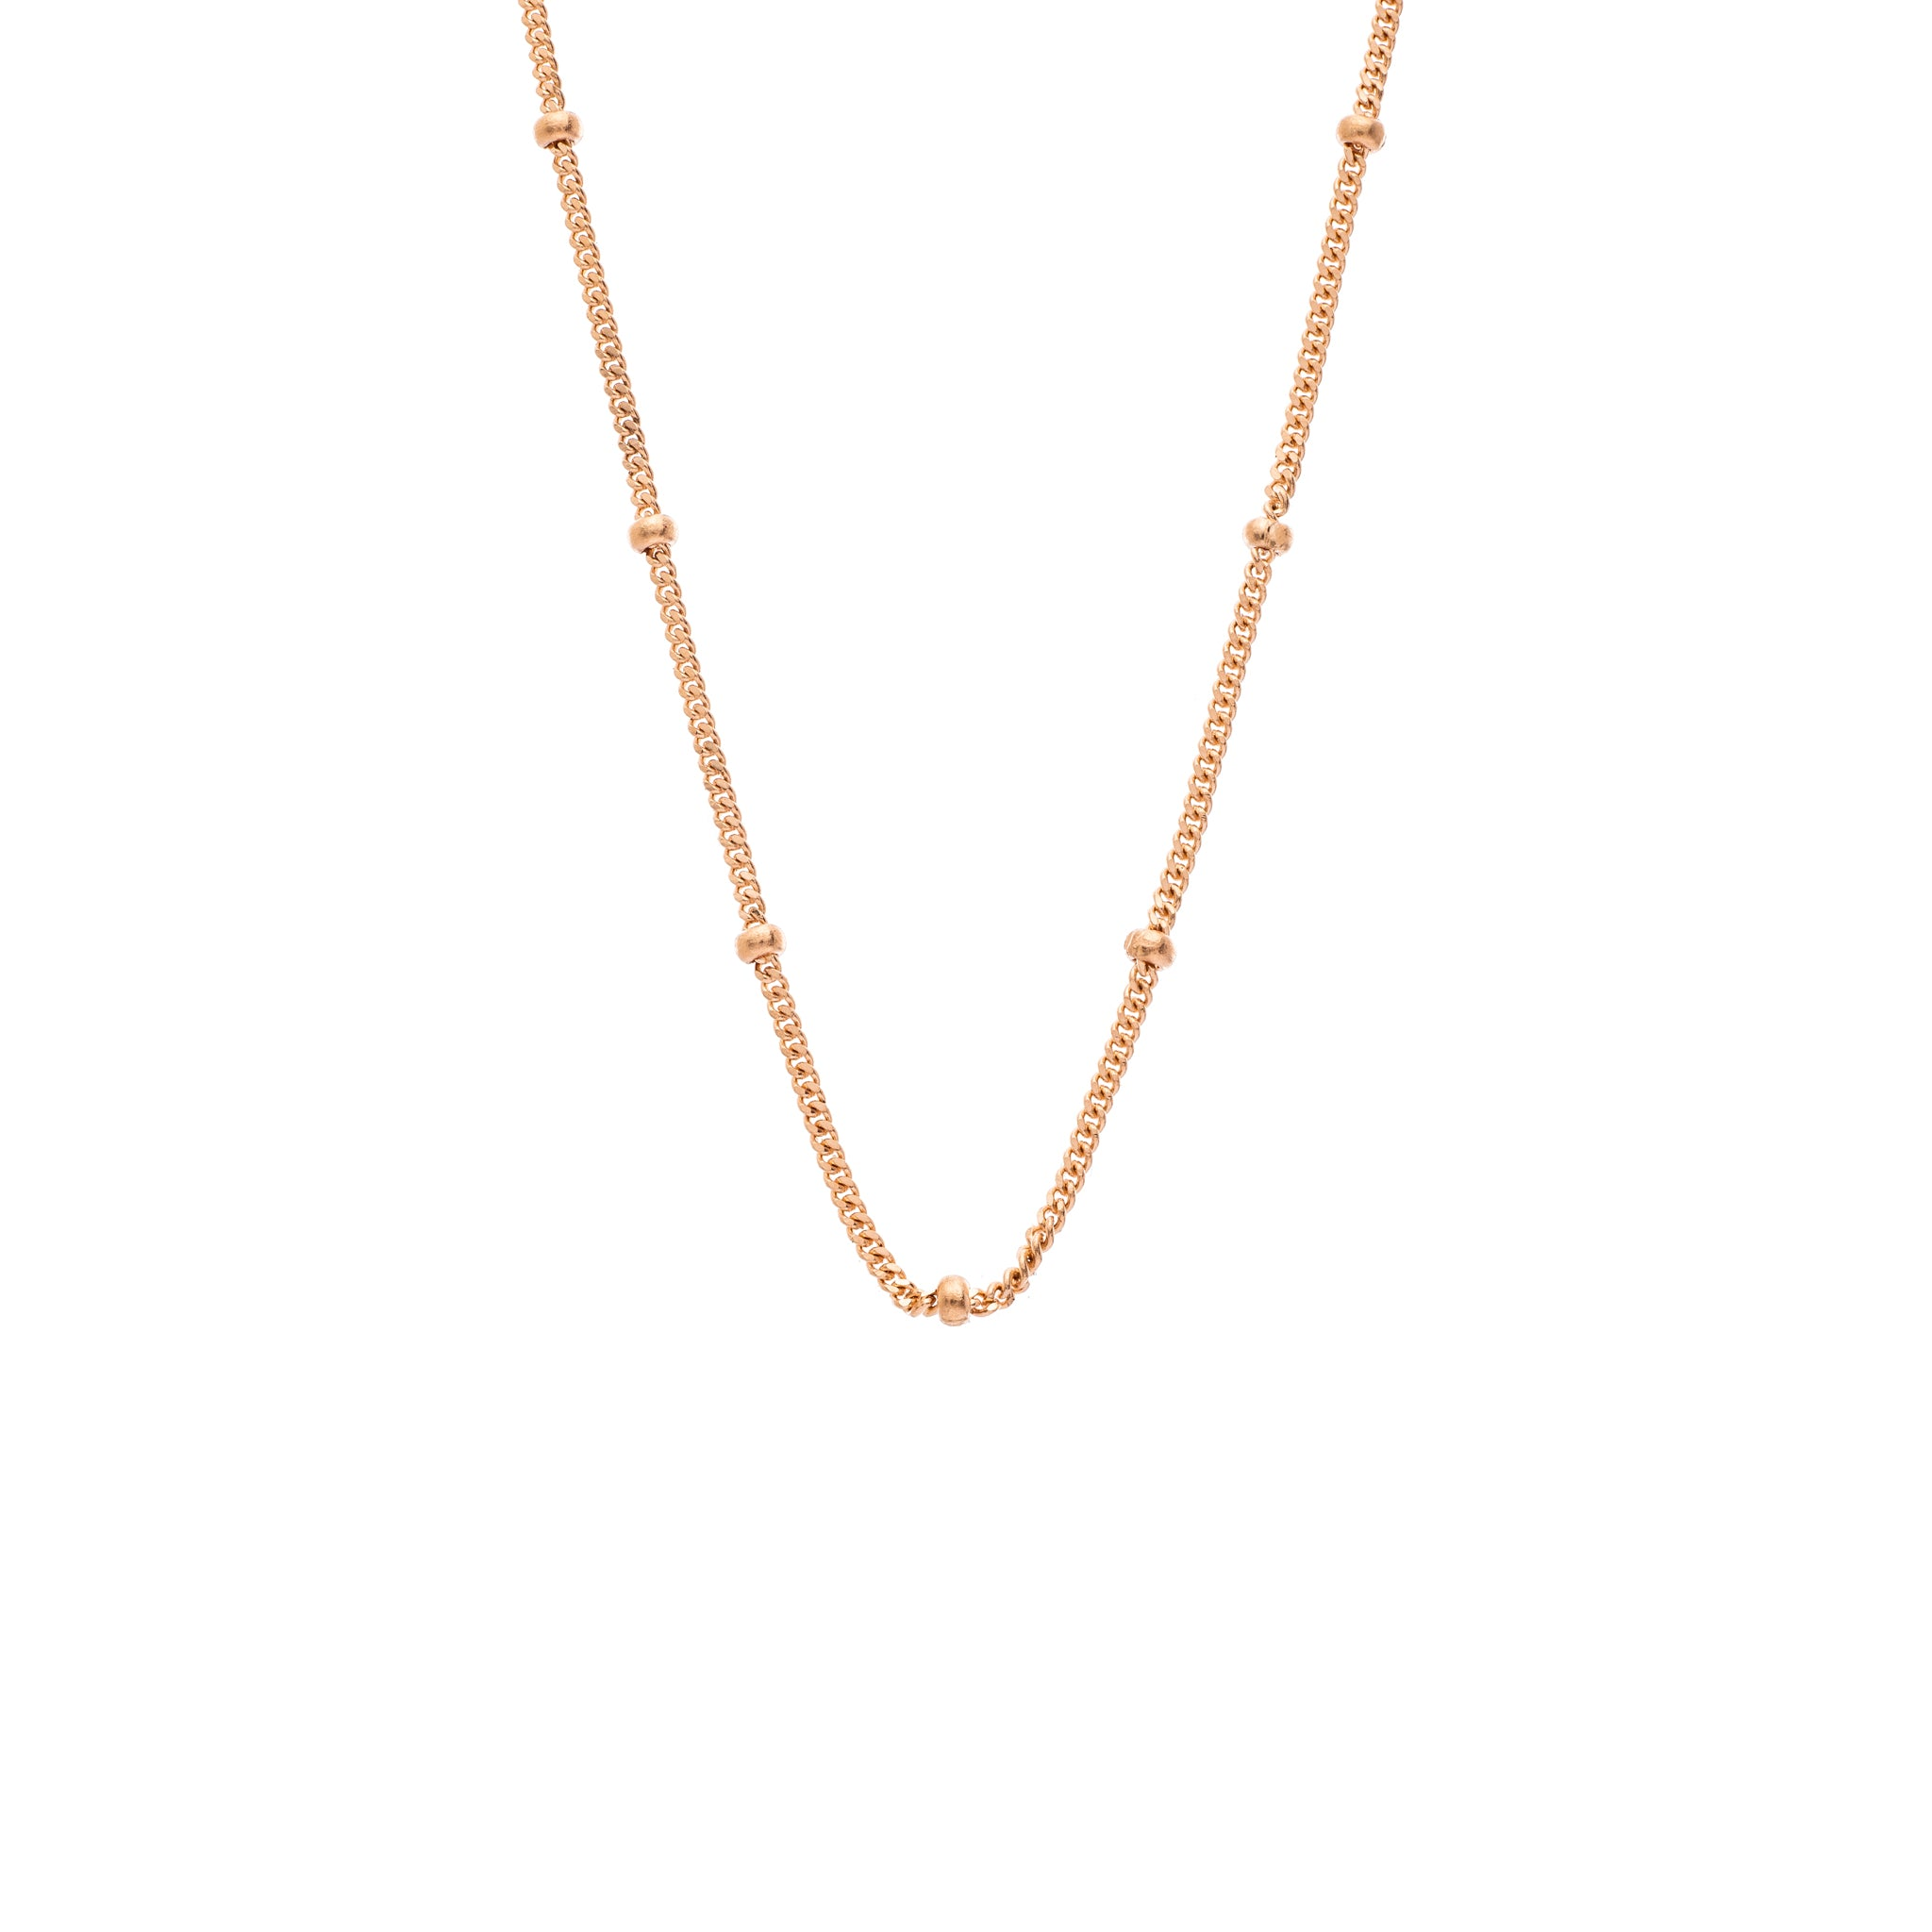 The Bead Chain 18K Rose Gold